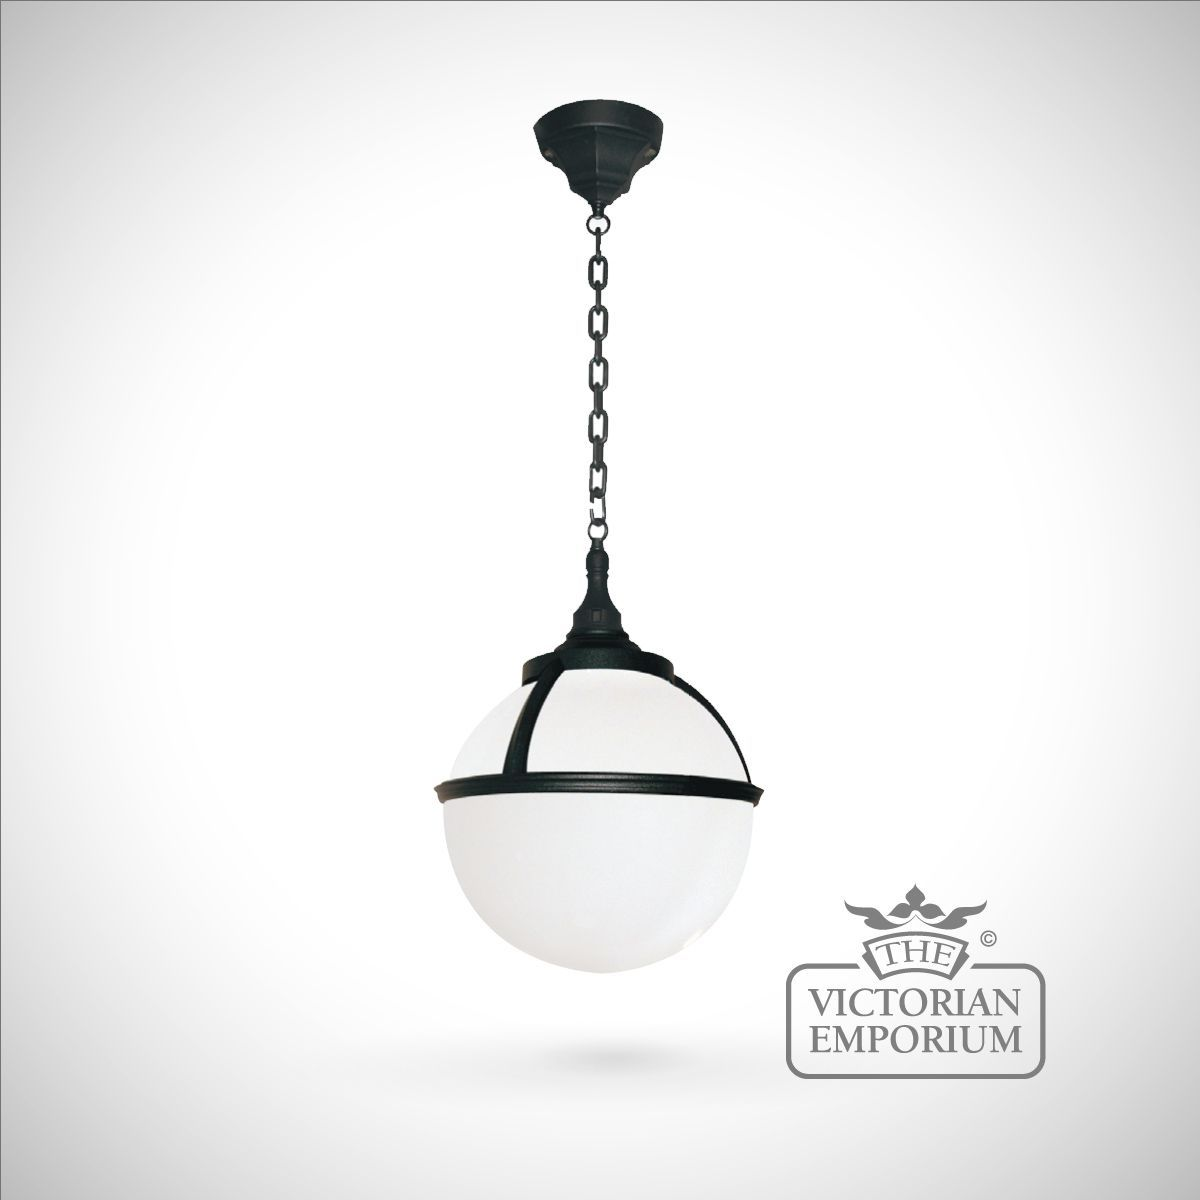 Buy globe chain lantern exterior ceiling lights spherical buy globe chain lantern exterior ceiling lights spherical outdoor hanging light with opaque shade aloadofball Choice Image